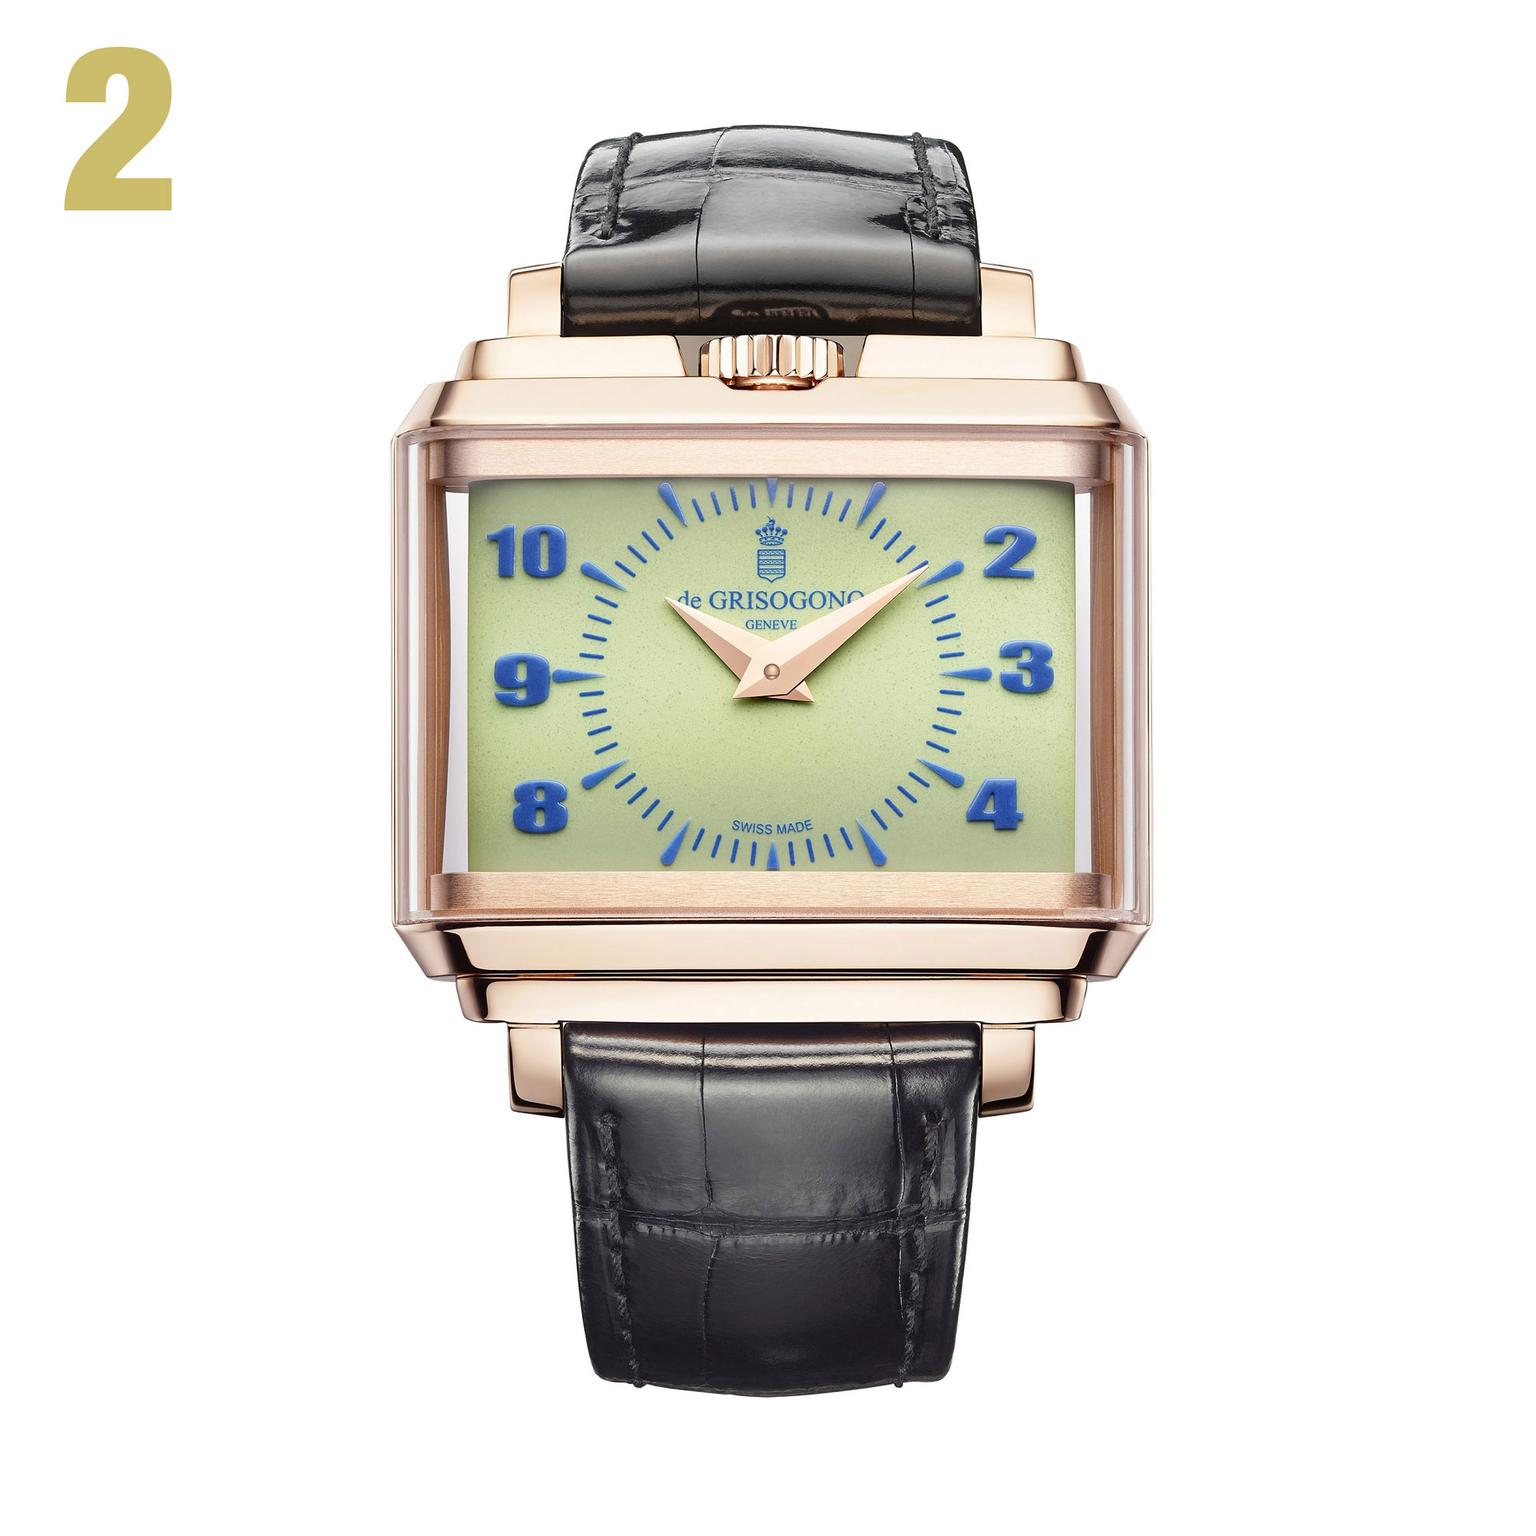 2 De Grisogono New Retro N01in rose gold with green dial watch